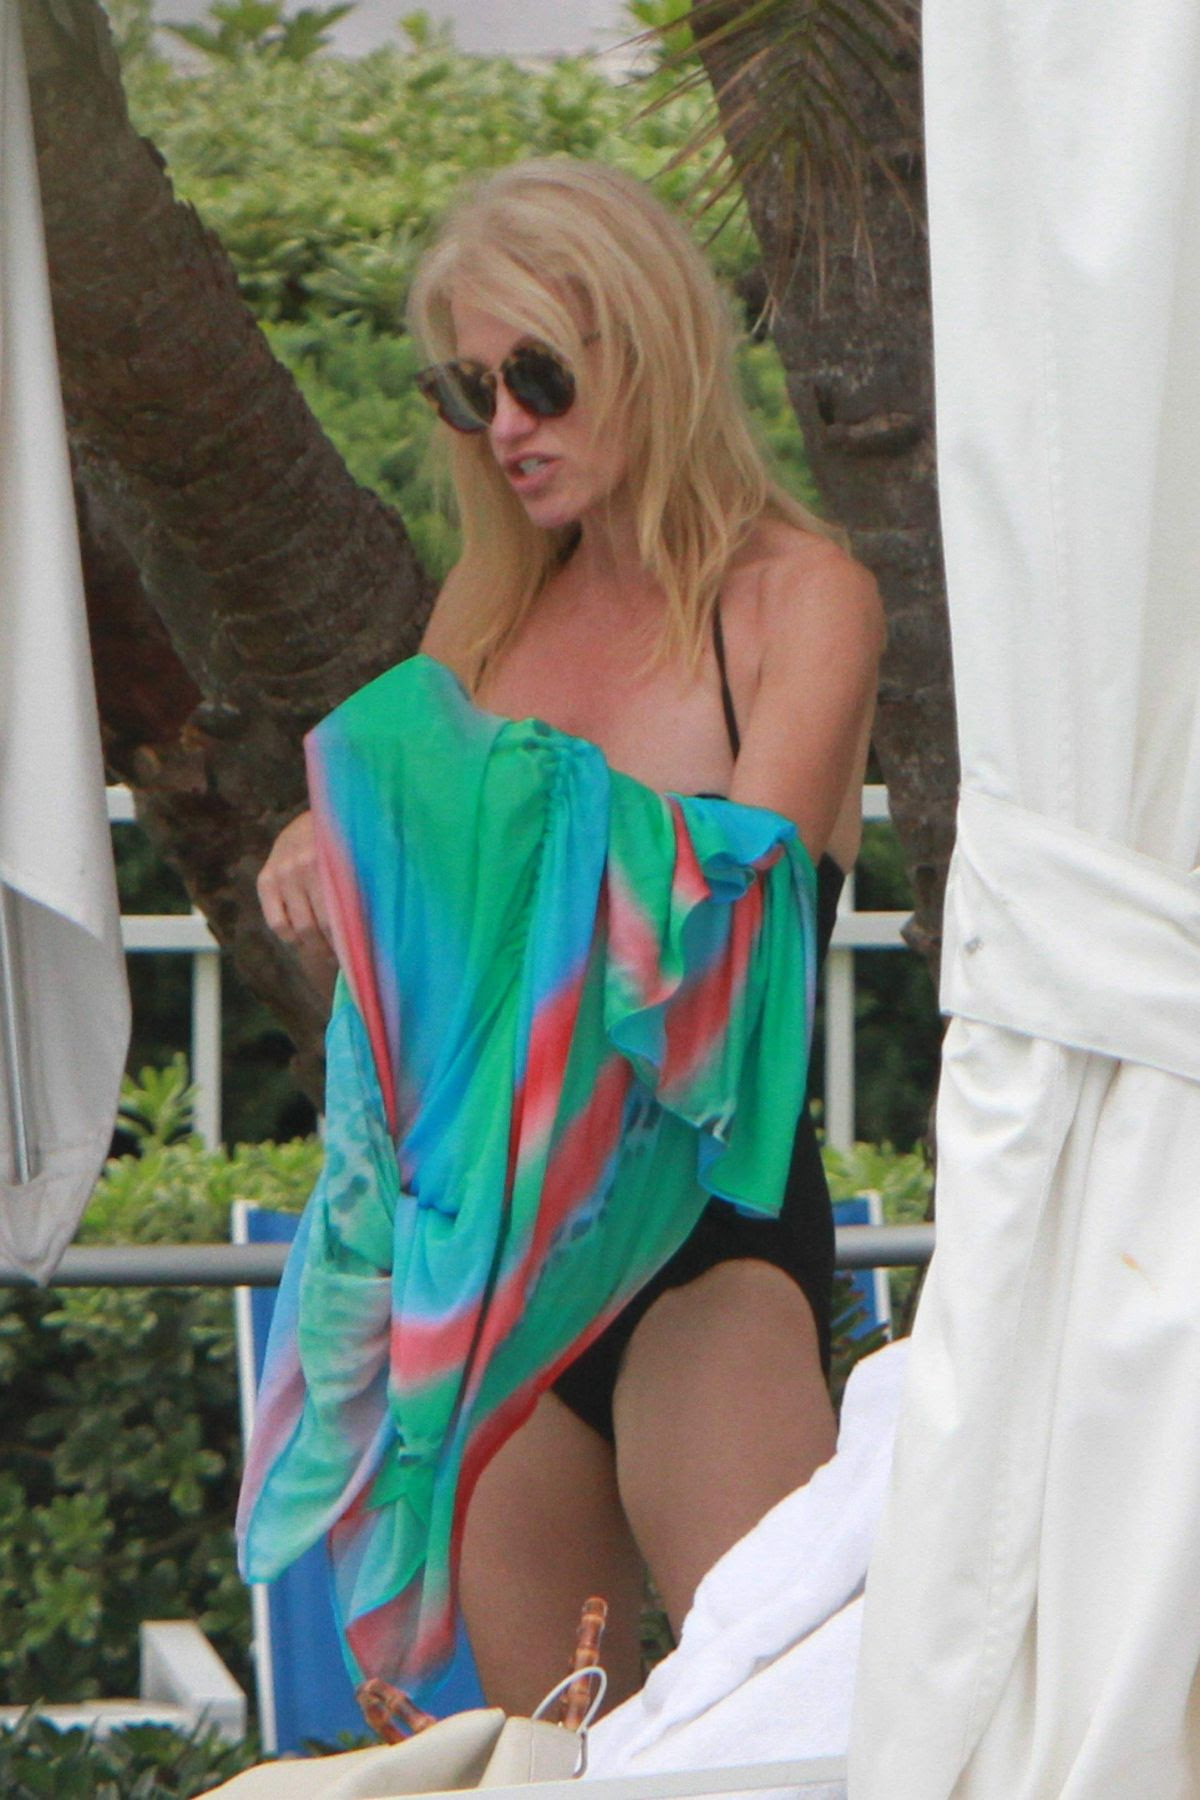 http://www.hawtcelebs.com/wp-content/uploads/2016/12/kellyanne-conway-in-swumsuit-at-a-pool-in-miami-11-28-2016_9.jpg